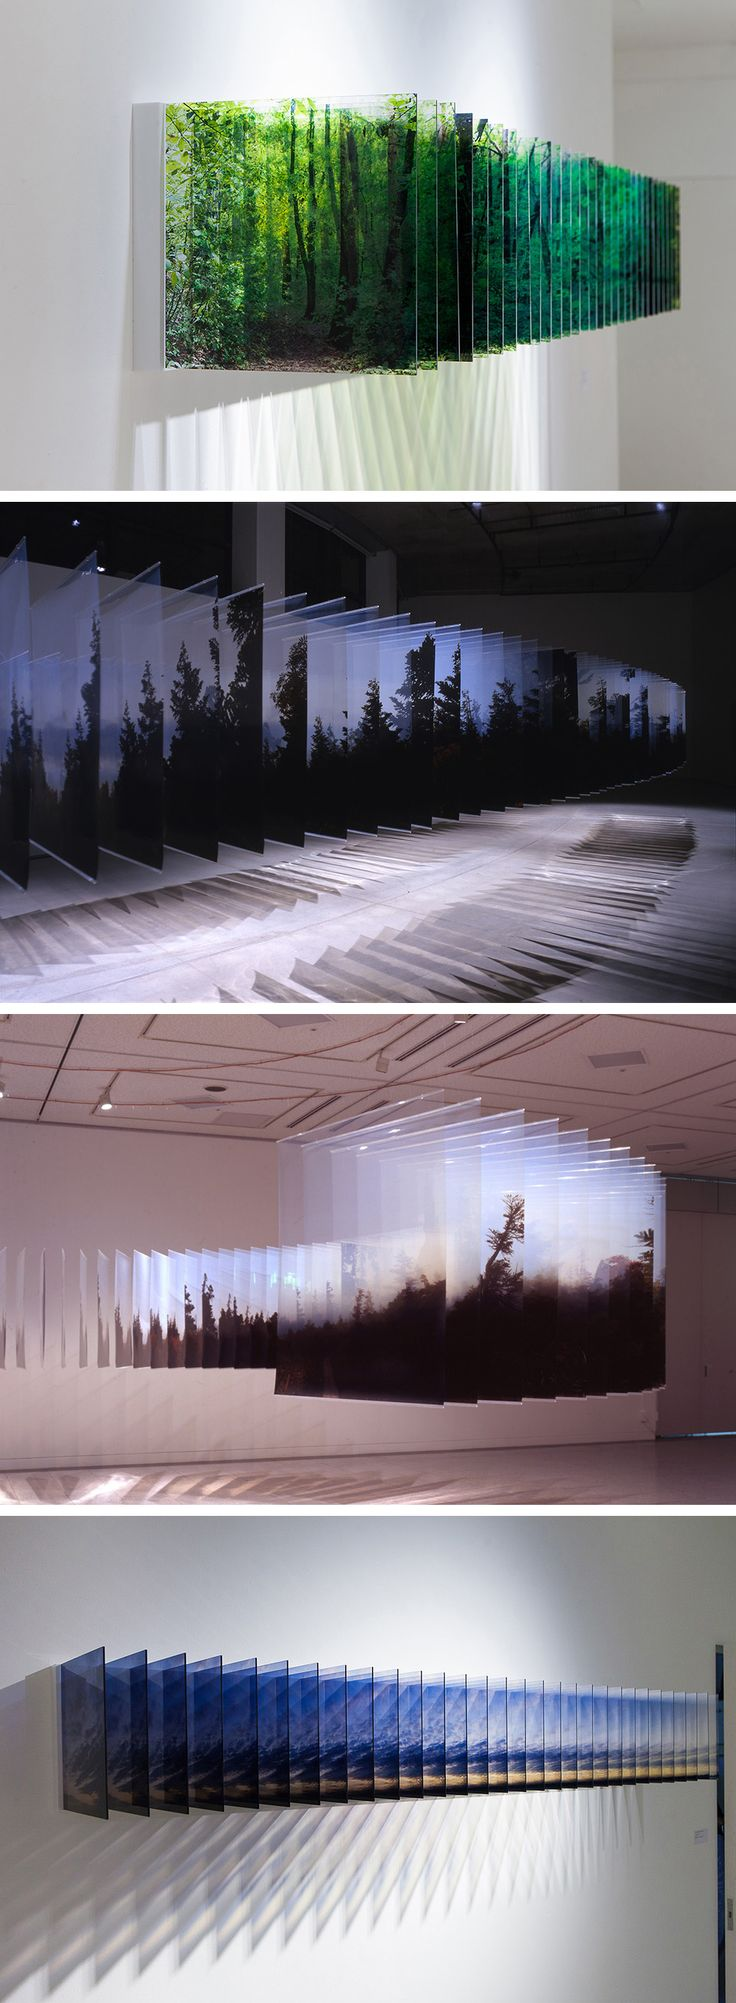 Three-Dimensional Landscapes Formed with Layered Acrylic Photographs by Nobuhiro Nakanishi